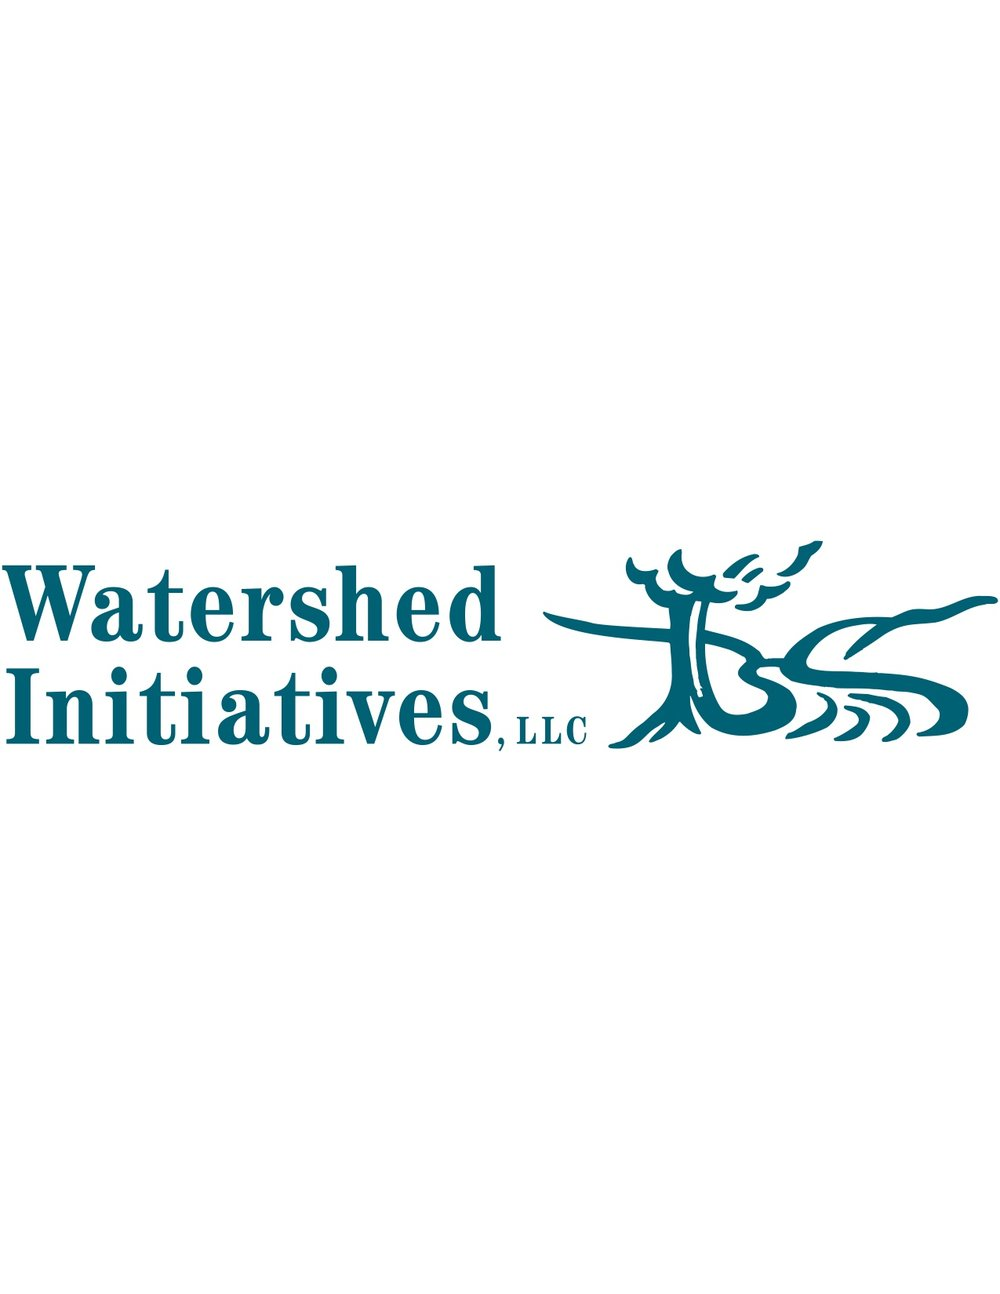 www.watersheds.com